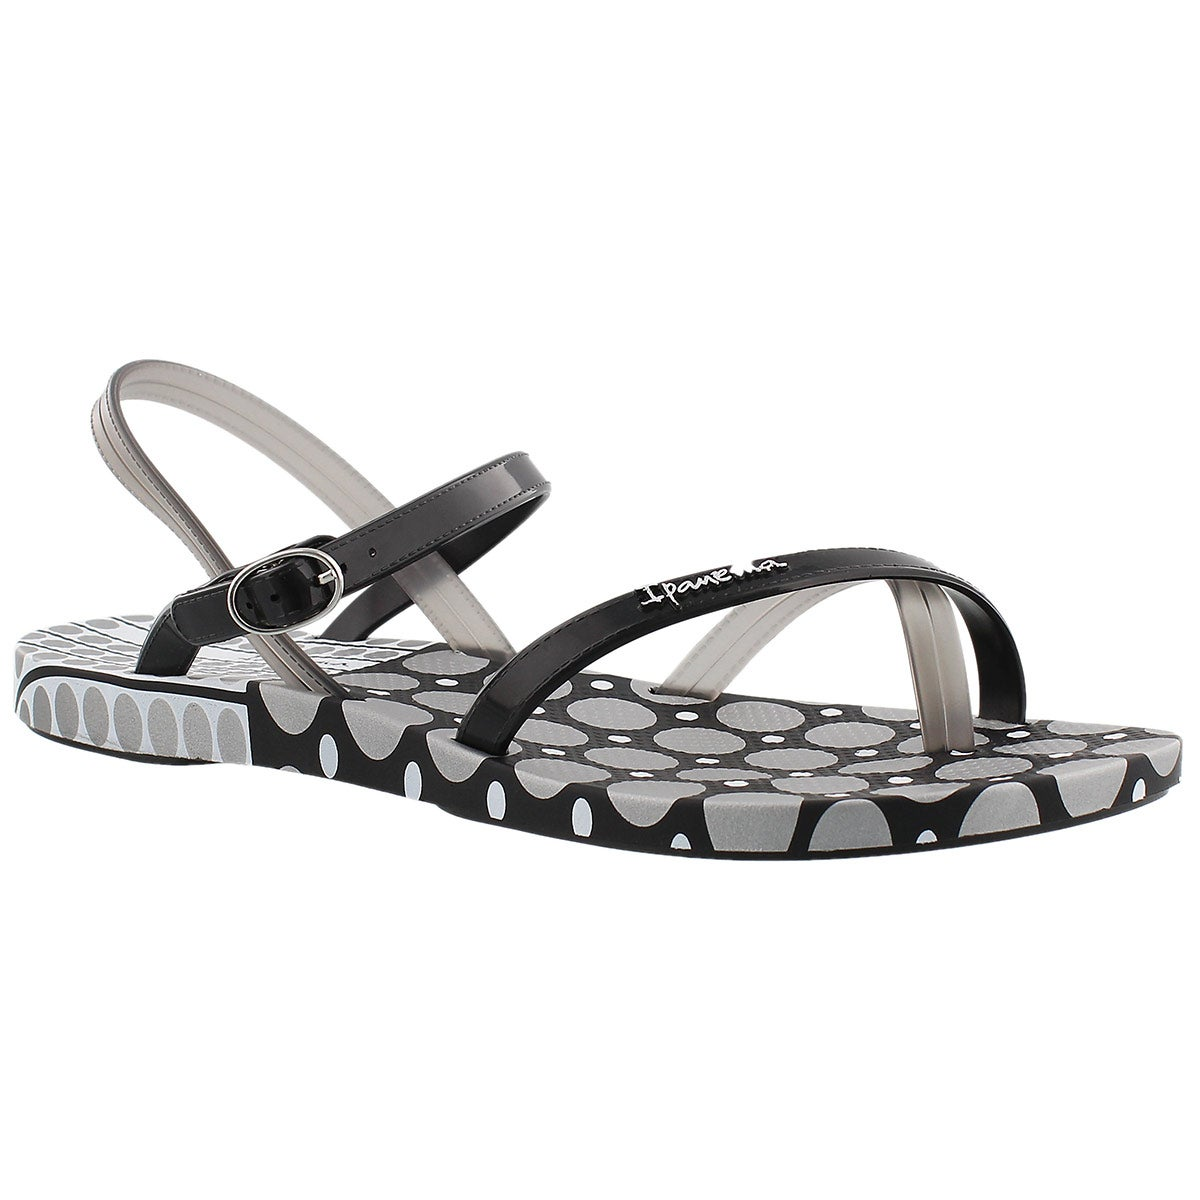 Women's SAND black/white dot toe loop flip flops